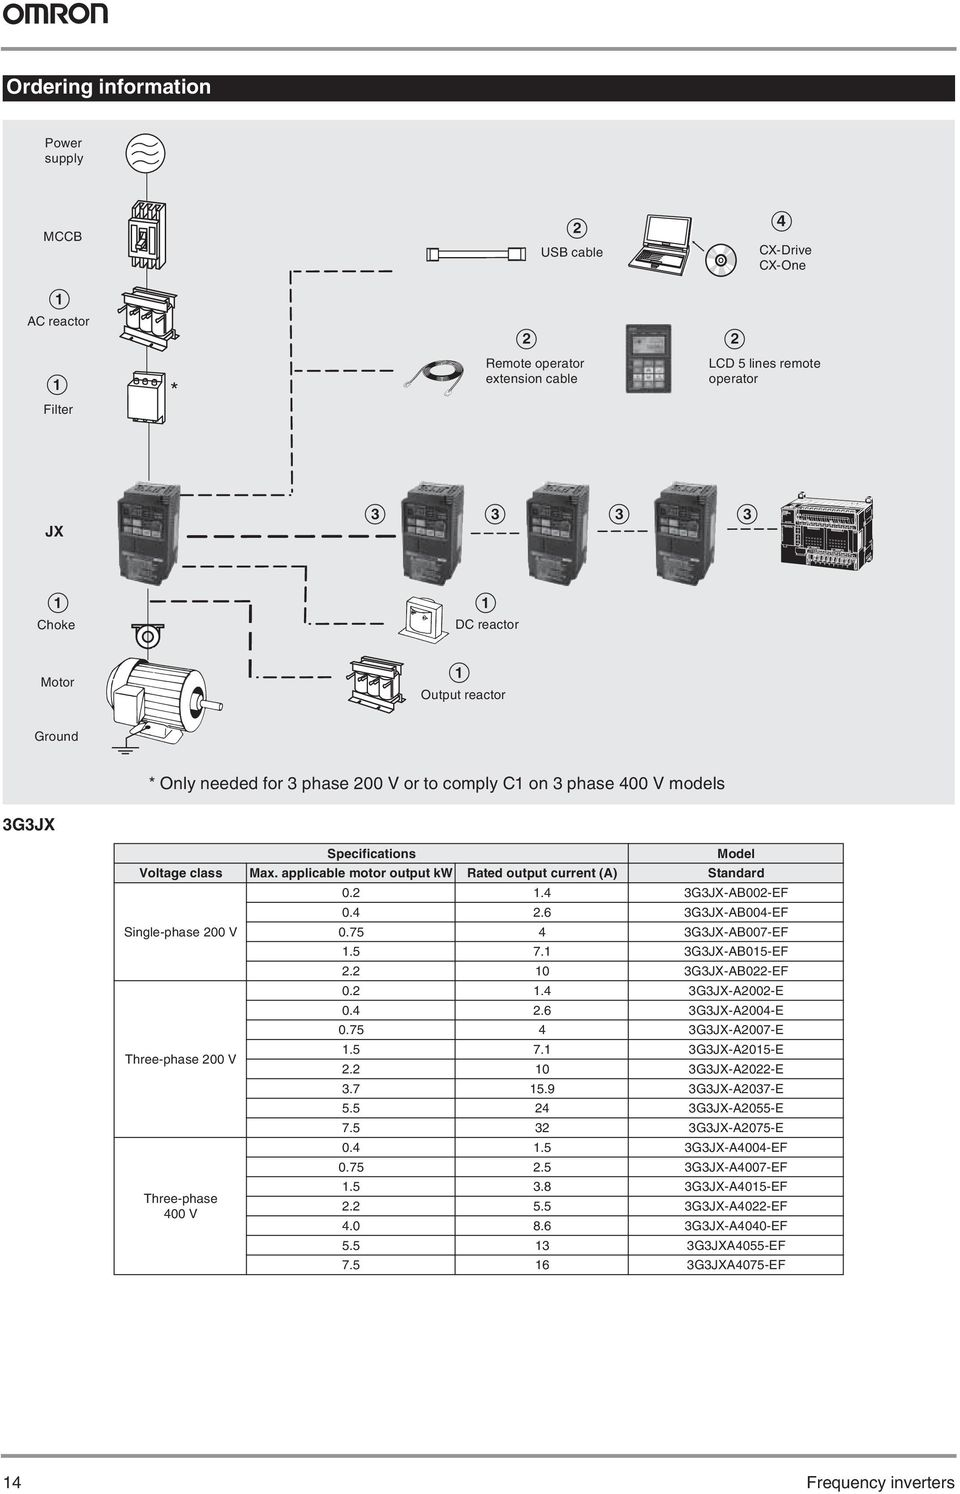 applicable motor output kw Rated output current () Standard Single-phase 200 V Three-phase 200 V Three-phase 400 V 0.2 1.4 3G3JX-B002-EF 0.4 2.6 3G3JX-B004-EF 0.75 4 3G3JX-B007-EF 1.5 7.